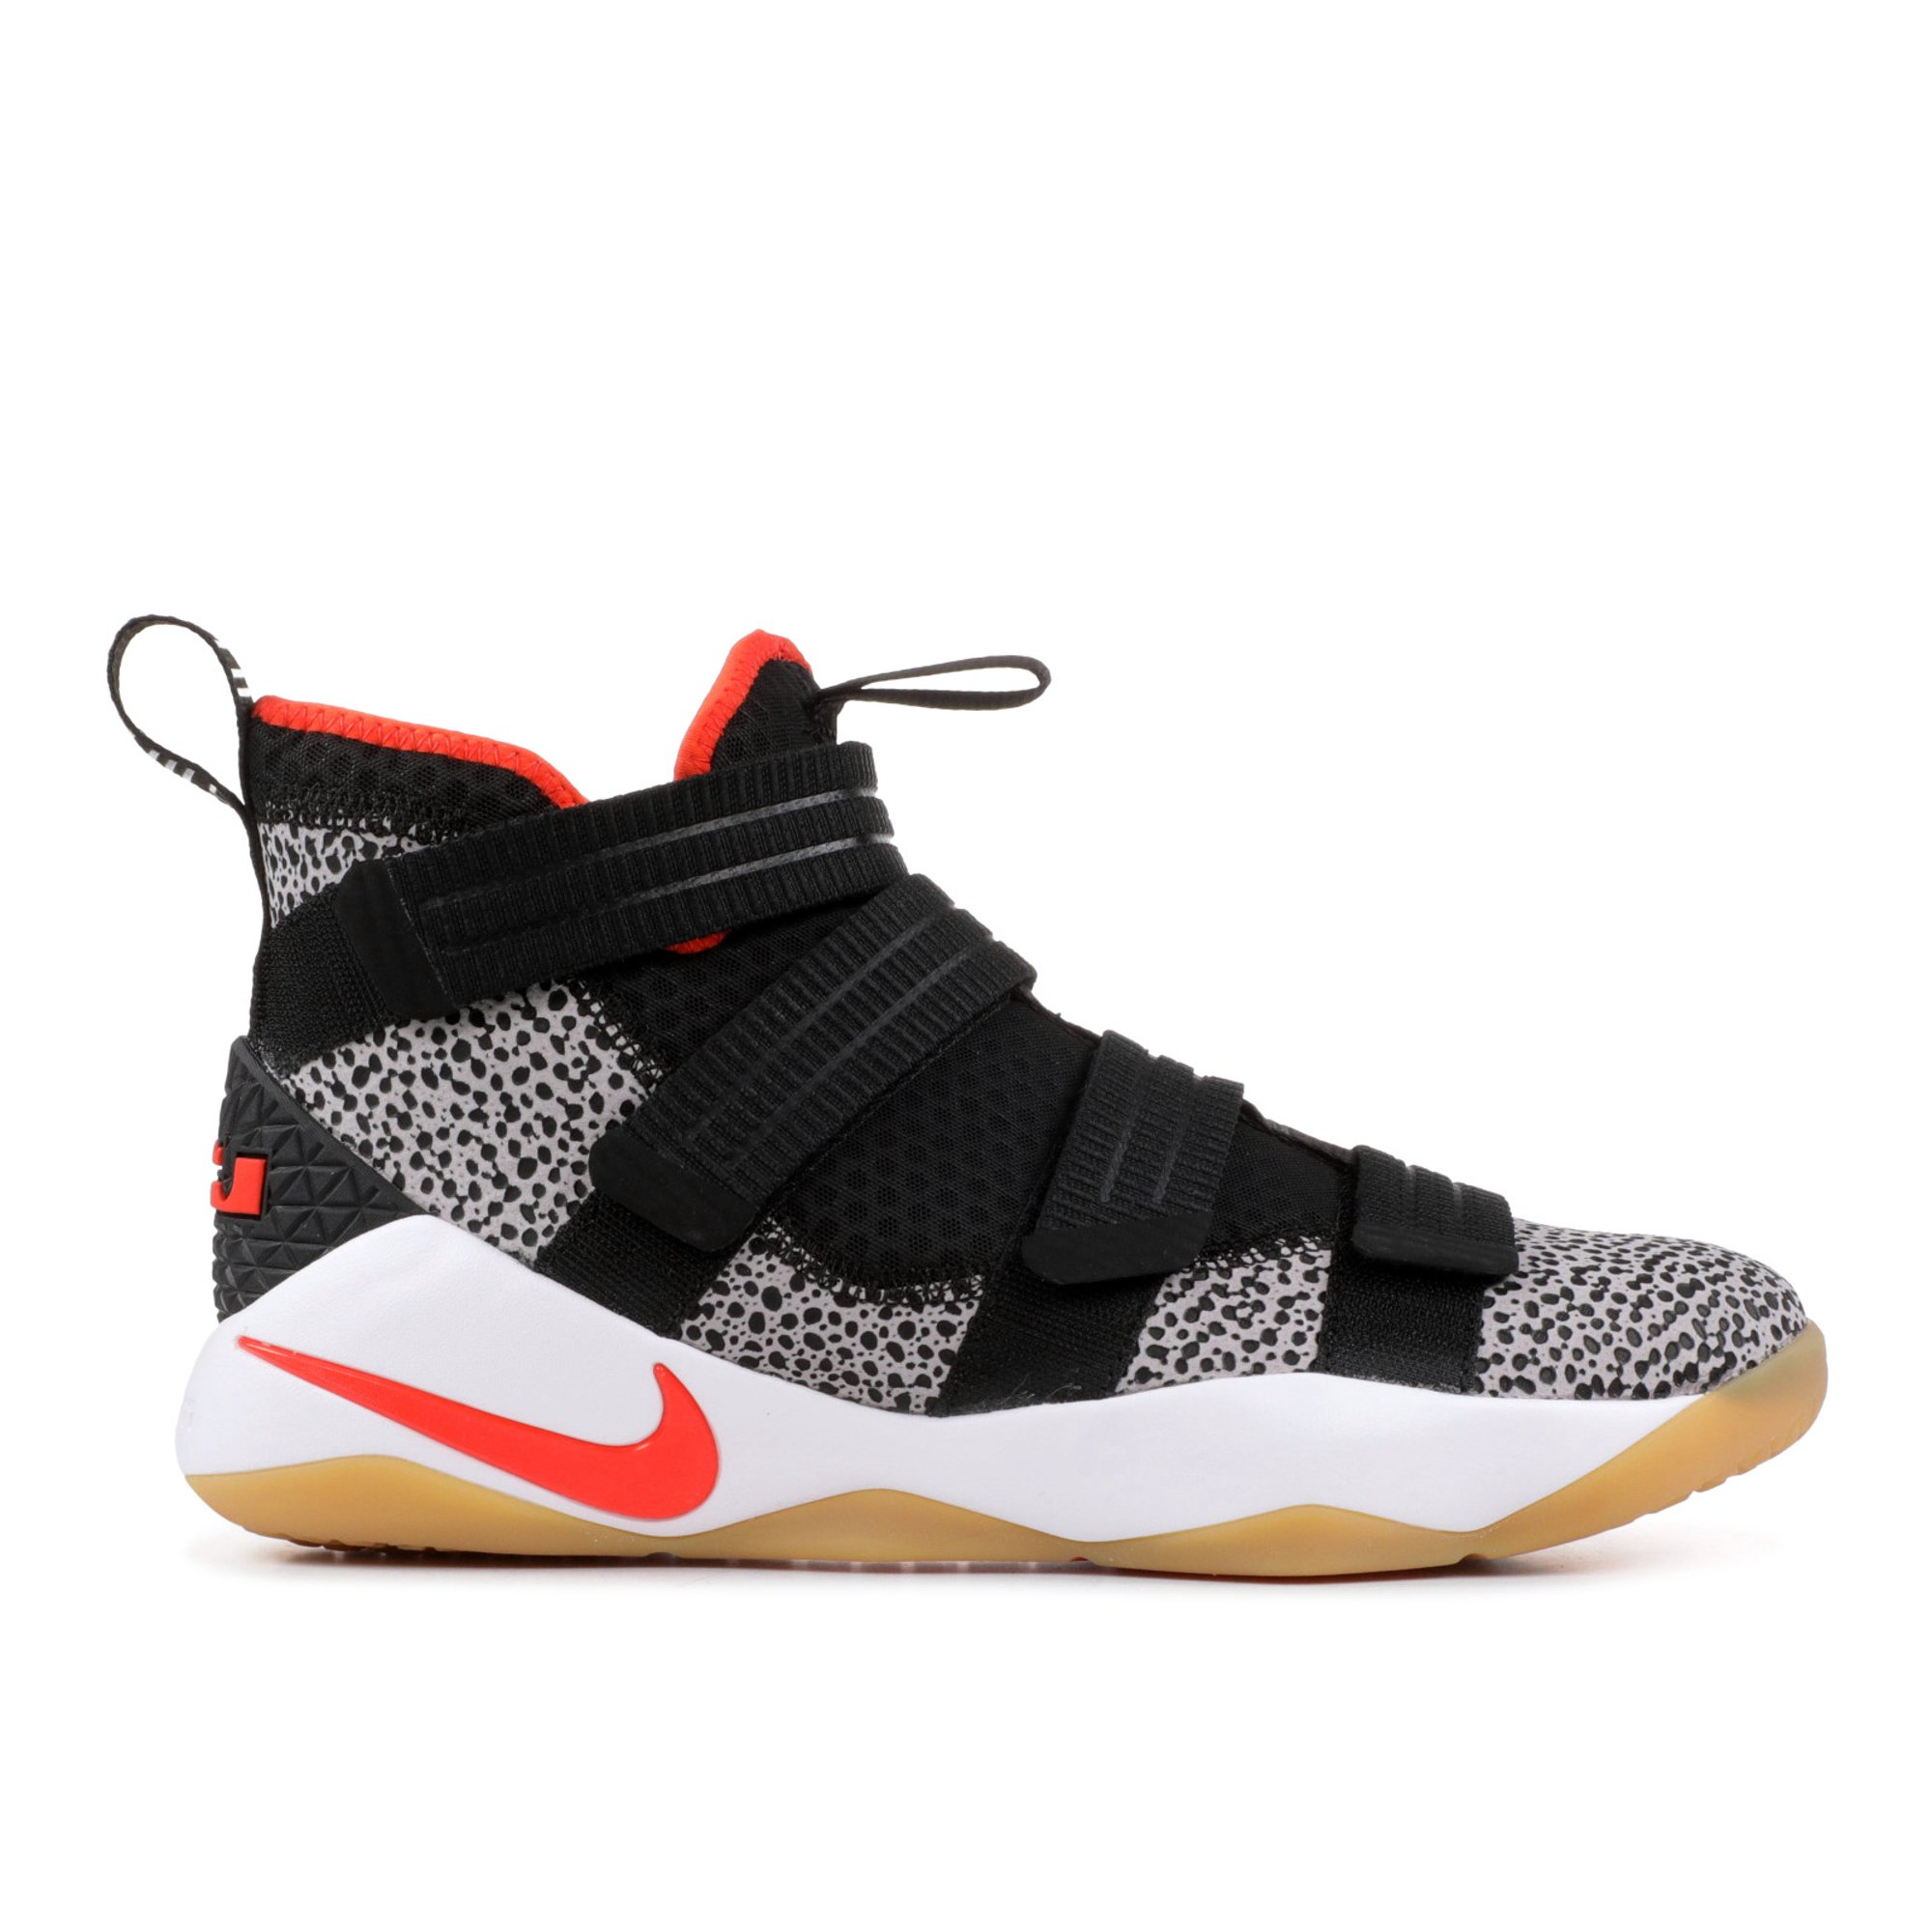 wholesale dealer f6717 28a60 Nike - Men - Lebron Soldier Xi Sfg - 897646-006 - Size 12